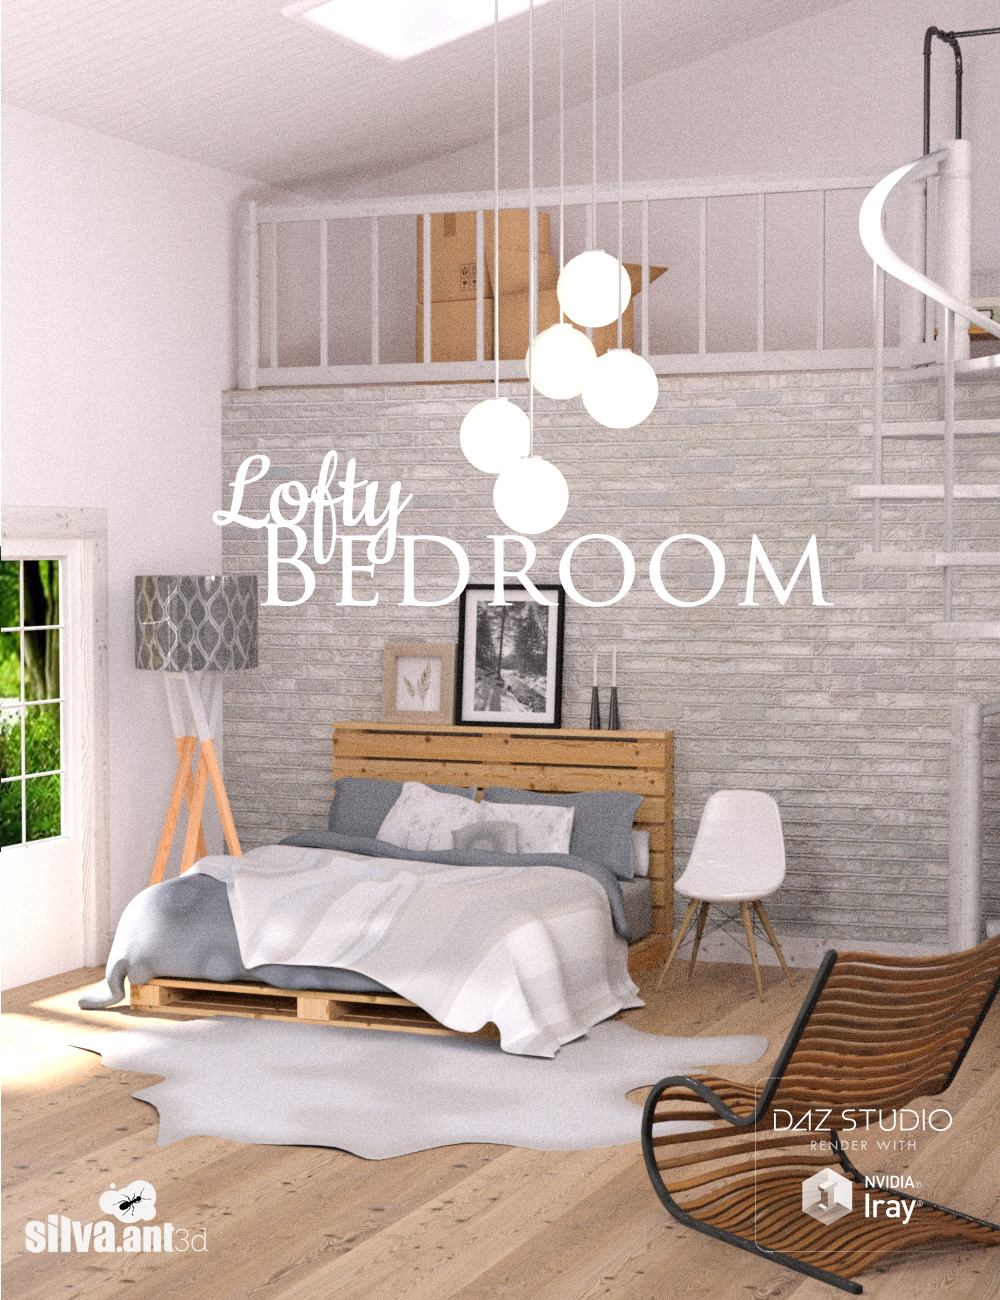 Lofty Bedroom by: SilvaAnt3d, 3D Models by Daz 3D